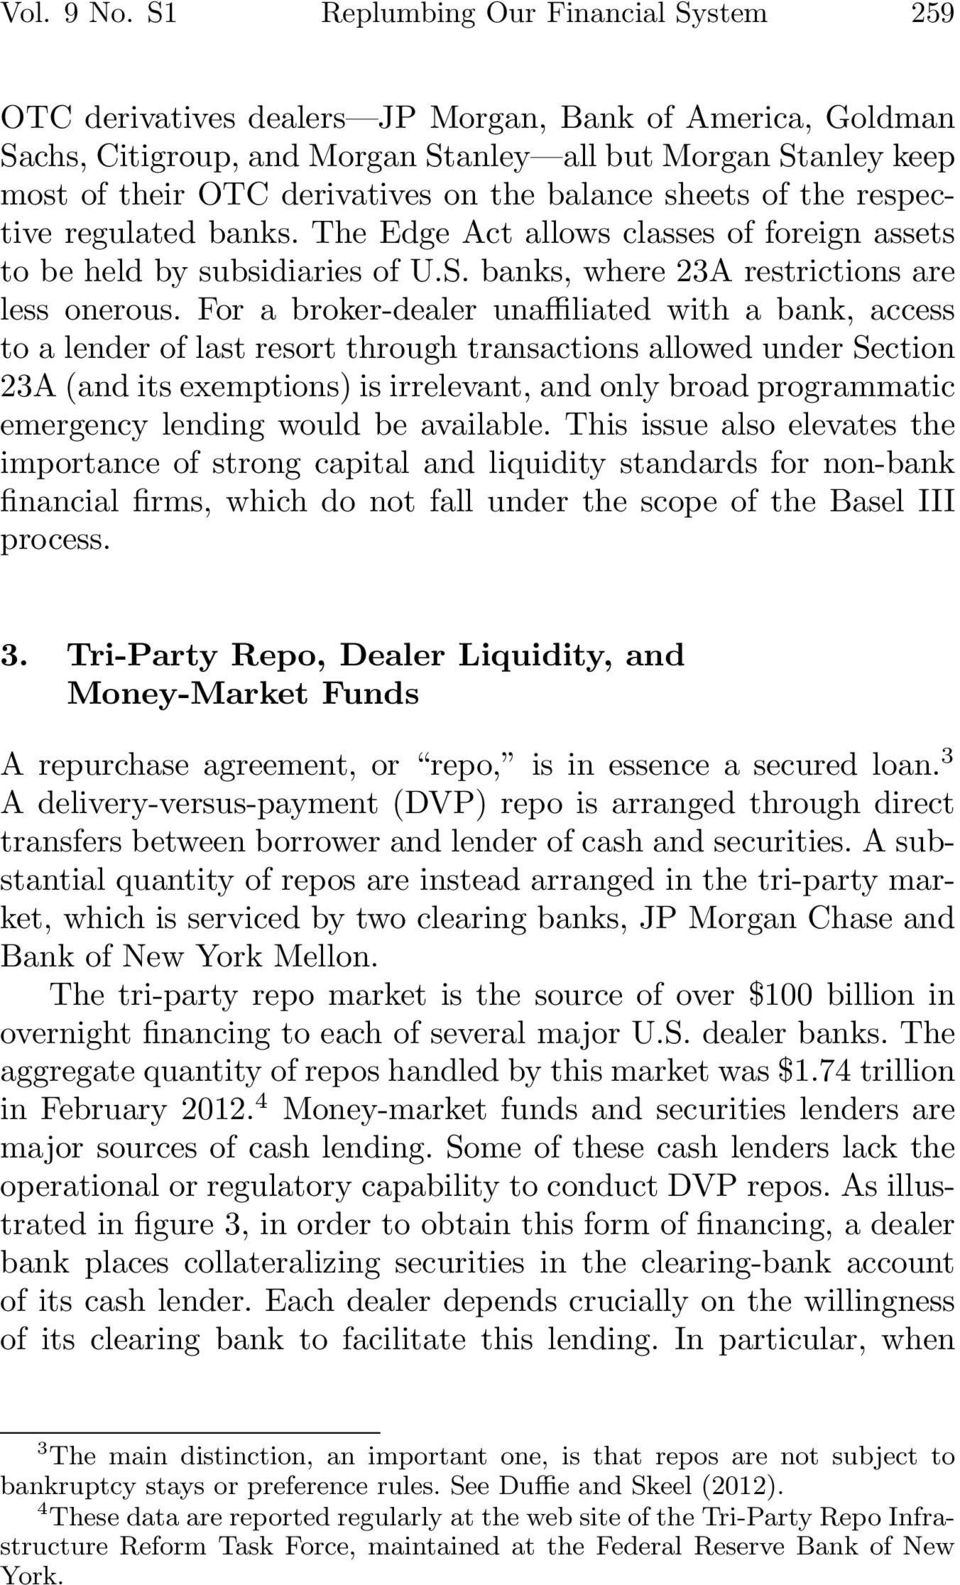 the balance sheets of the respective regulated banks. The Edge Act allows classes of foreign assets to be held by subsidiaries of U.S. banks, where 23A restrictions are less onerous.